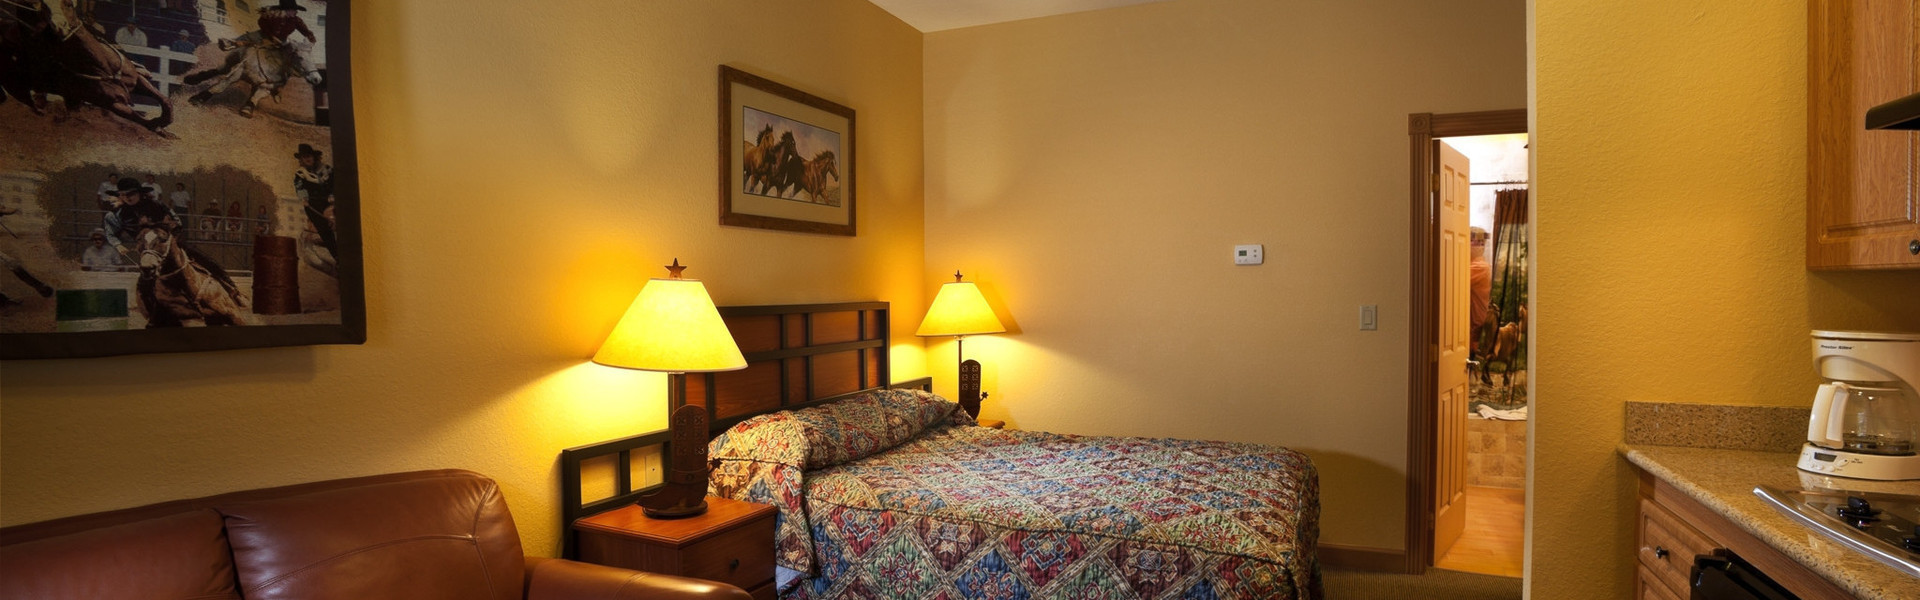 Deluxe Accommodations at an Authentic Florida Dude Ranch   Westgate River Ranch Resort & Rodeo